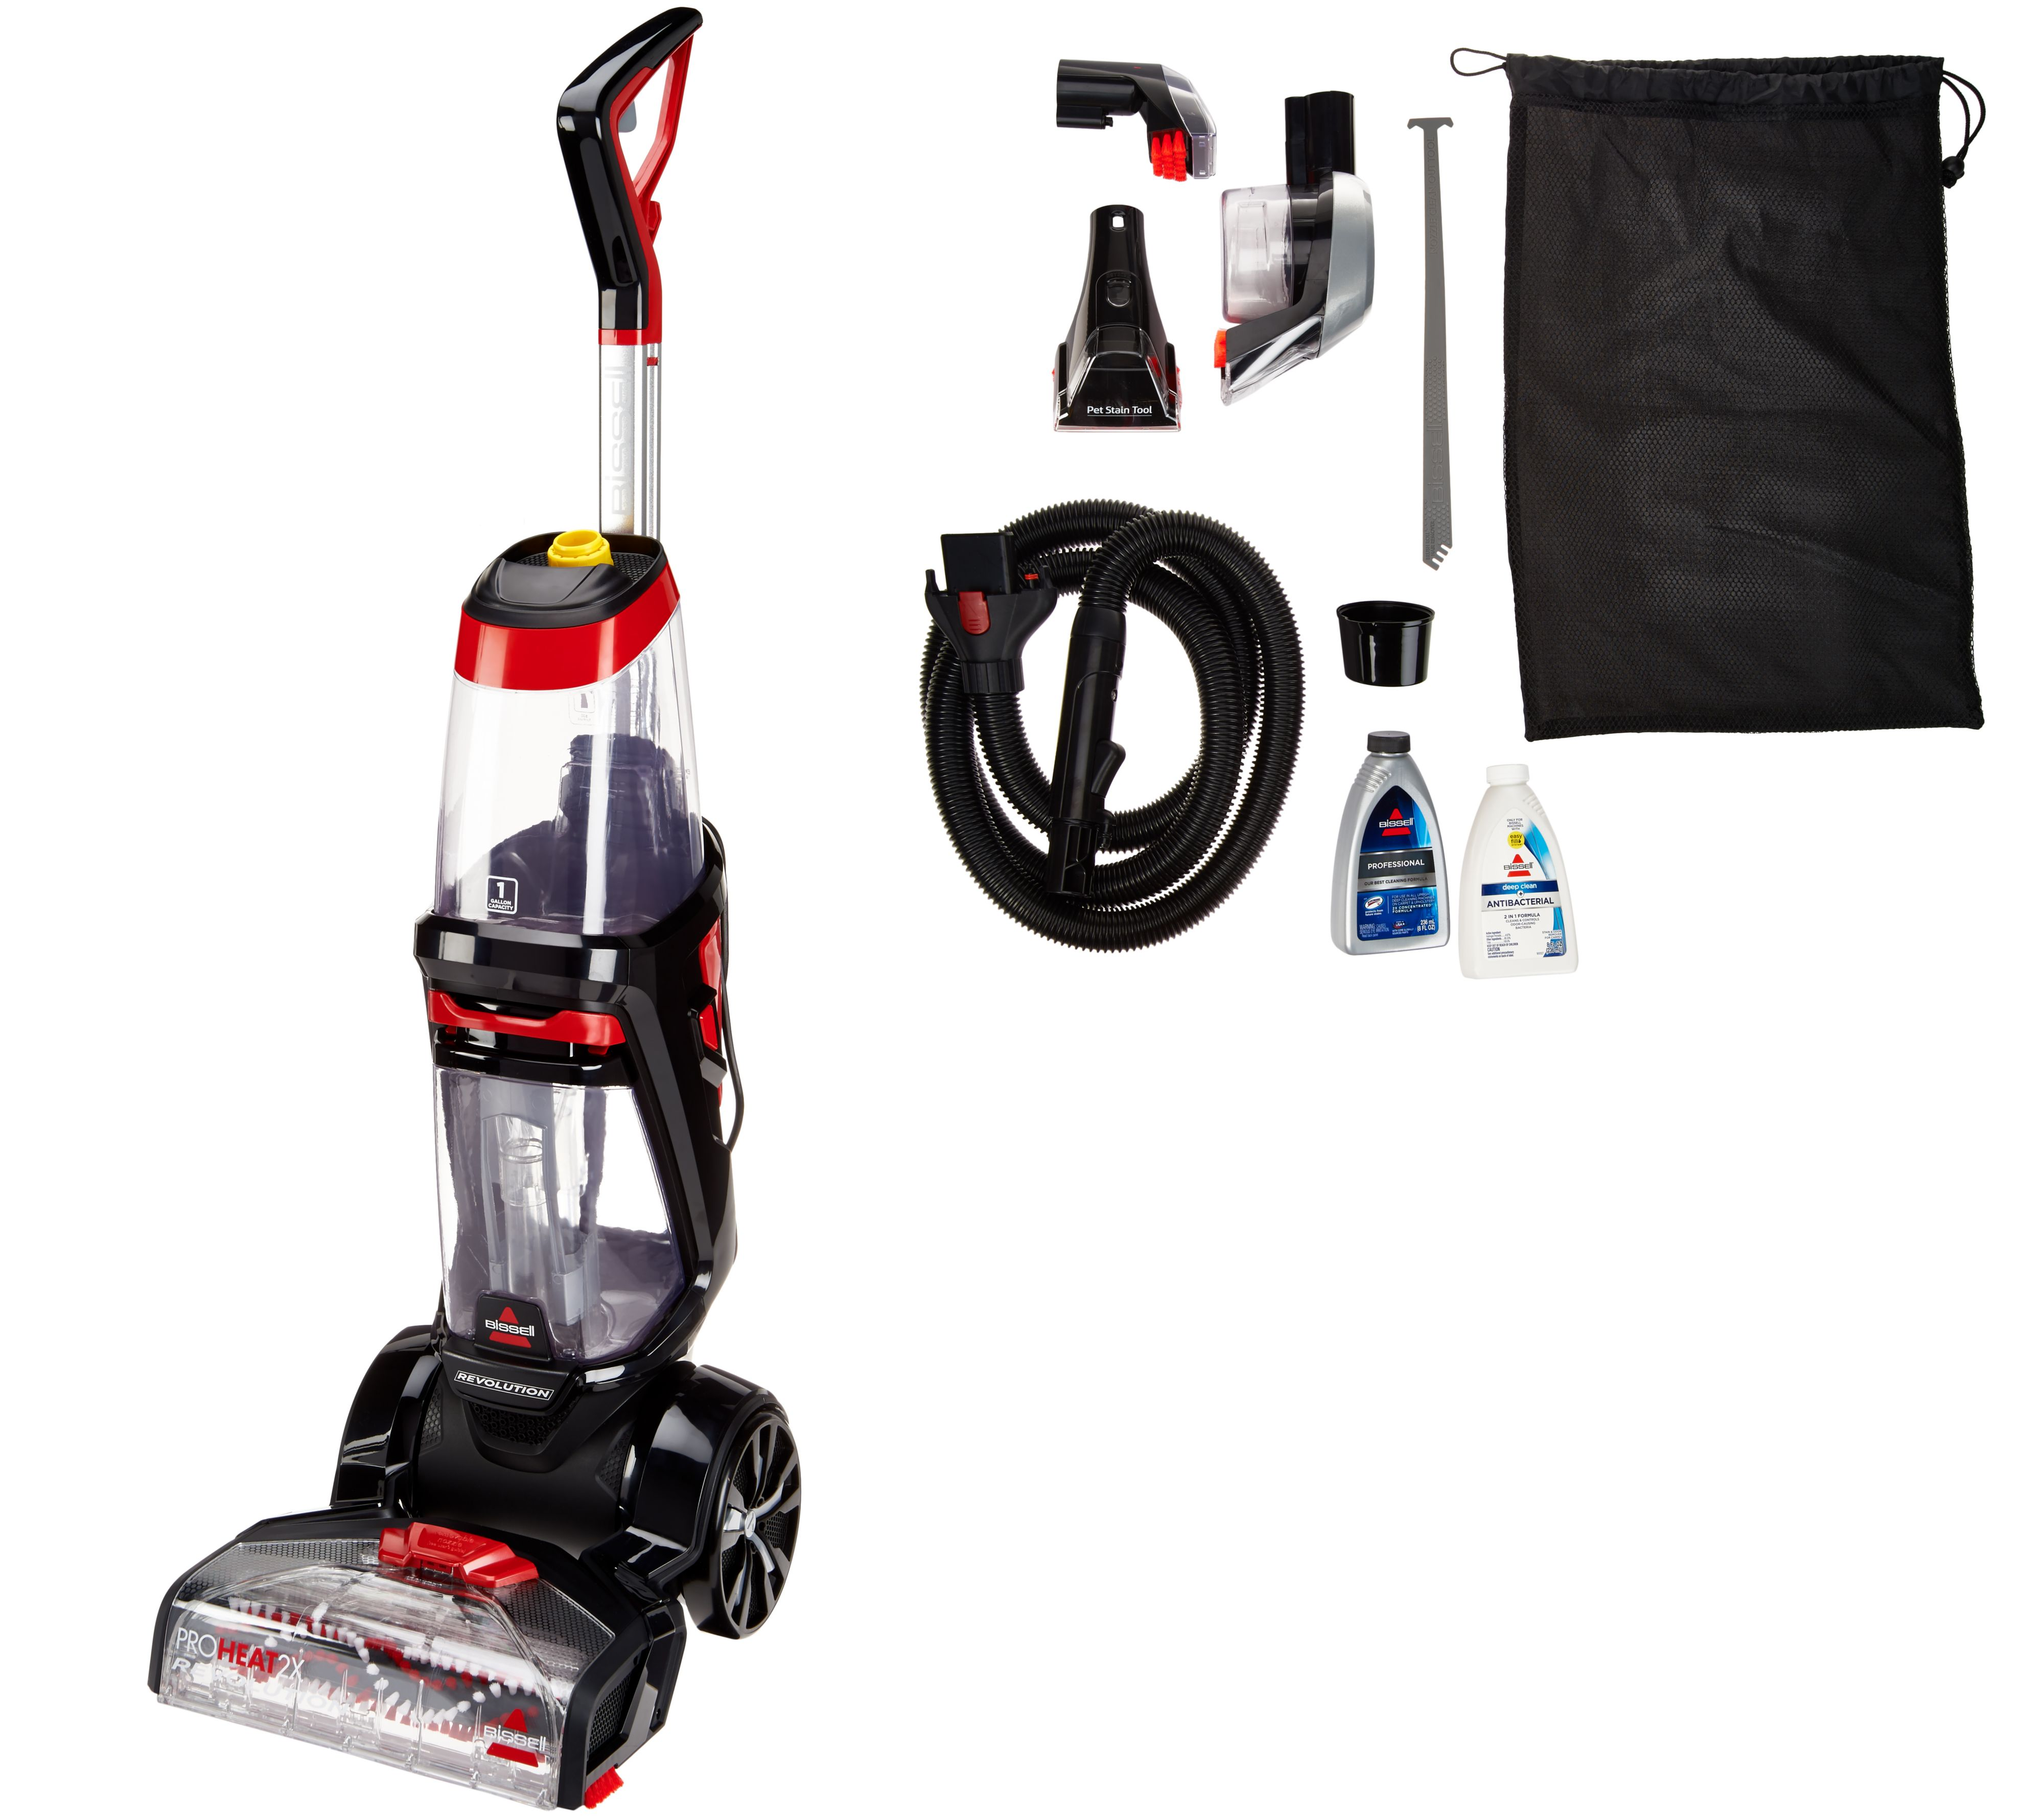 Cleaning & Janitorial Supplies Other Cleaning Supplies Dr 850 Steam Cleaner 2019 Latest Style Online Sale 50%